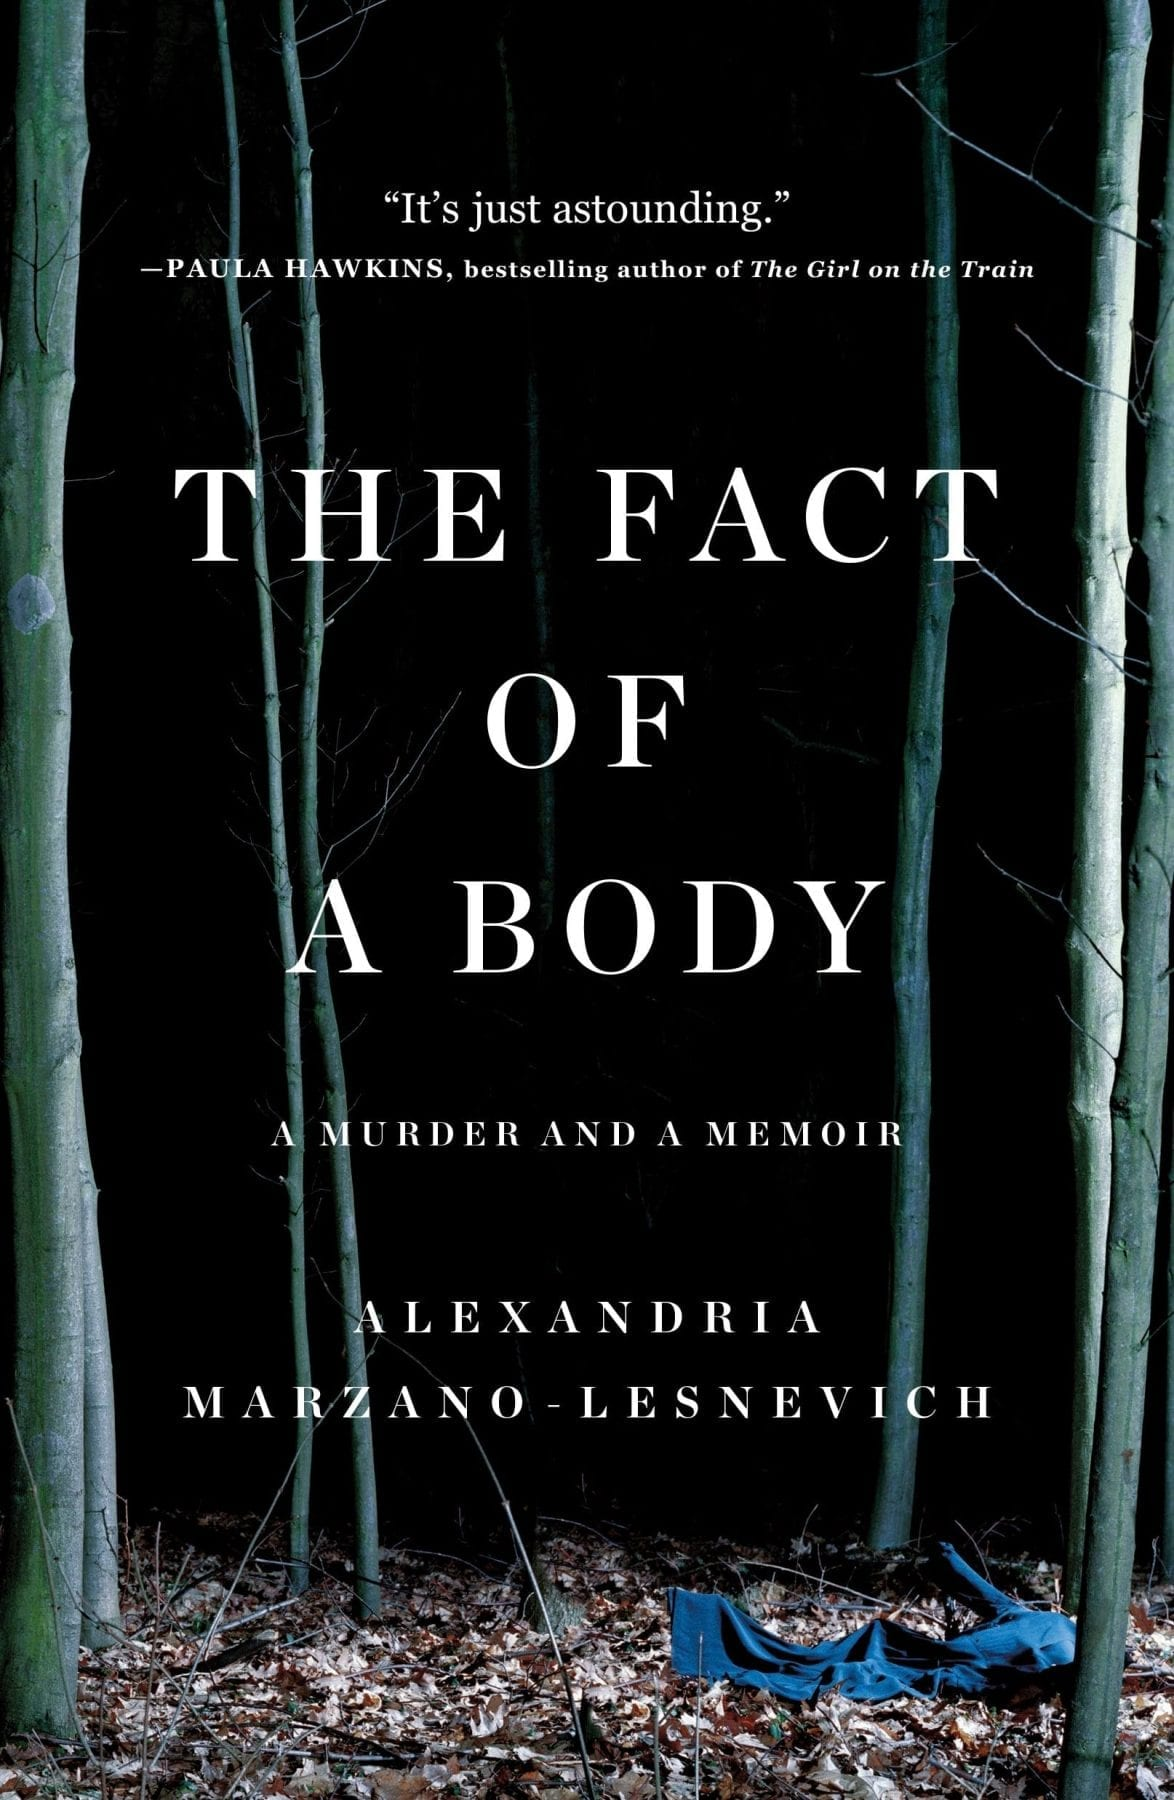 The Fact of a Body- A Murder and a Memoir by Alexandria Marzano-Lesnevich